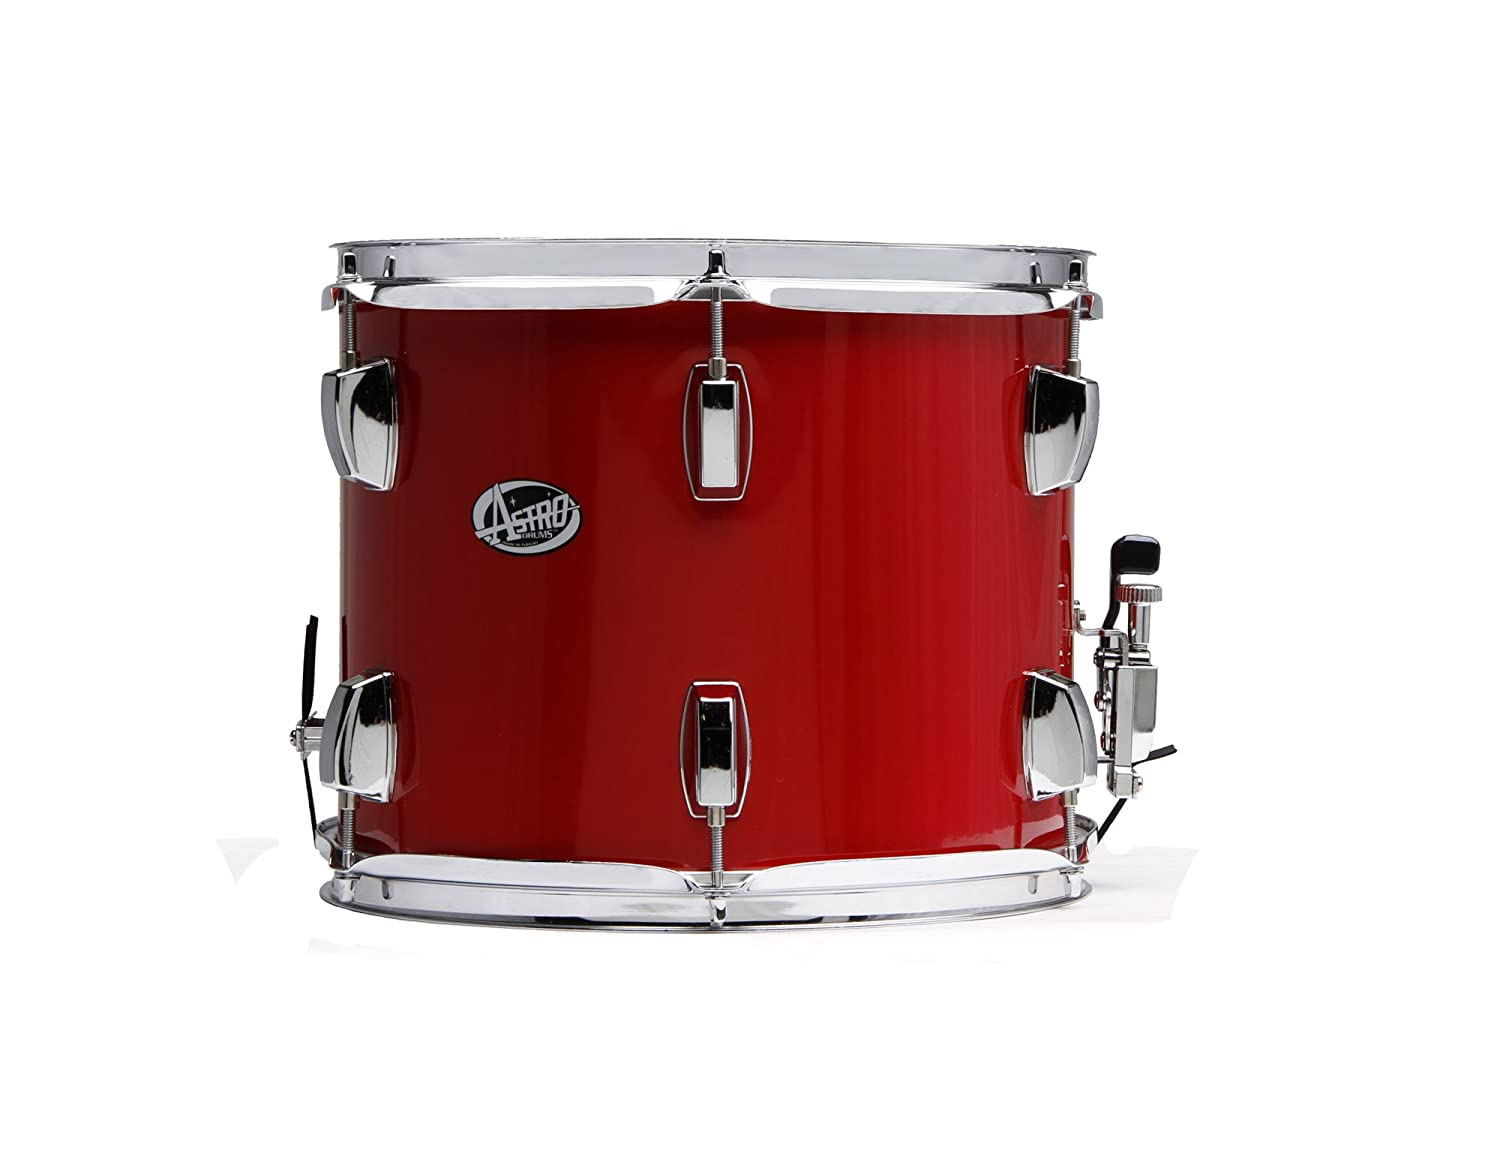 Astro MR1210S-RD 12-Inch Light Weight Student Marching Snare Drum